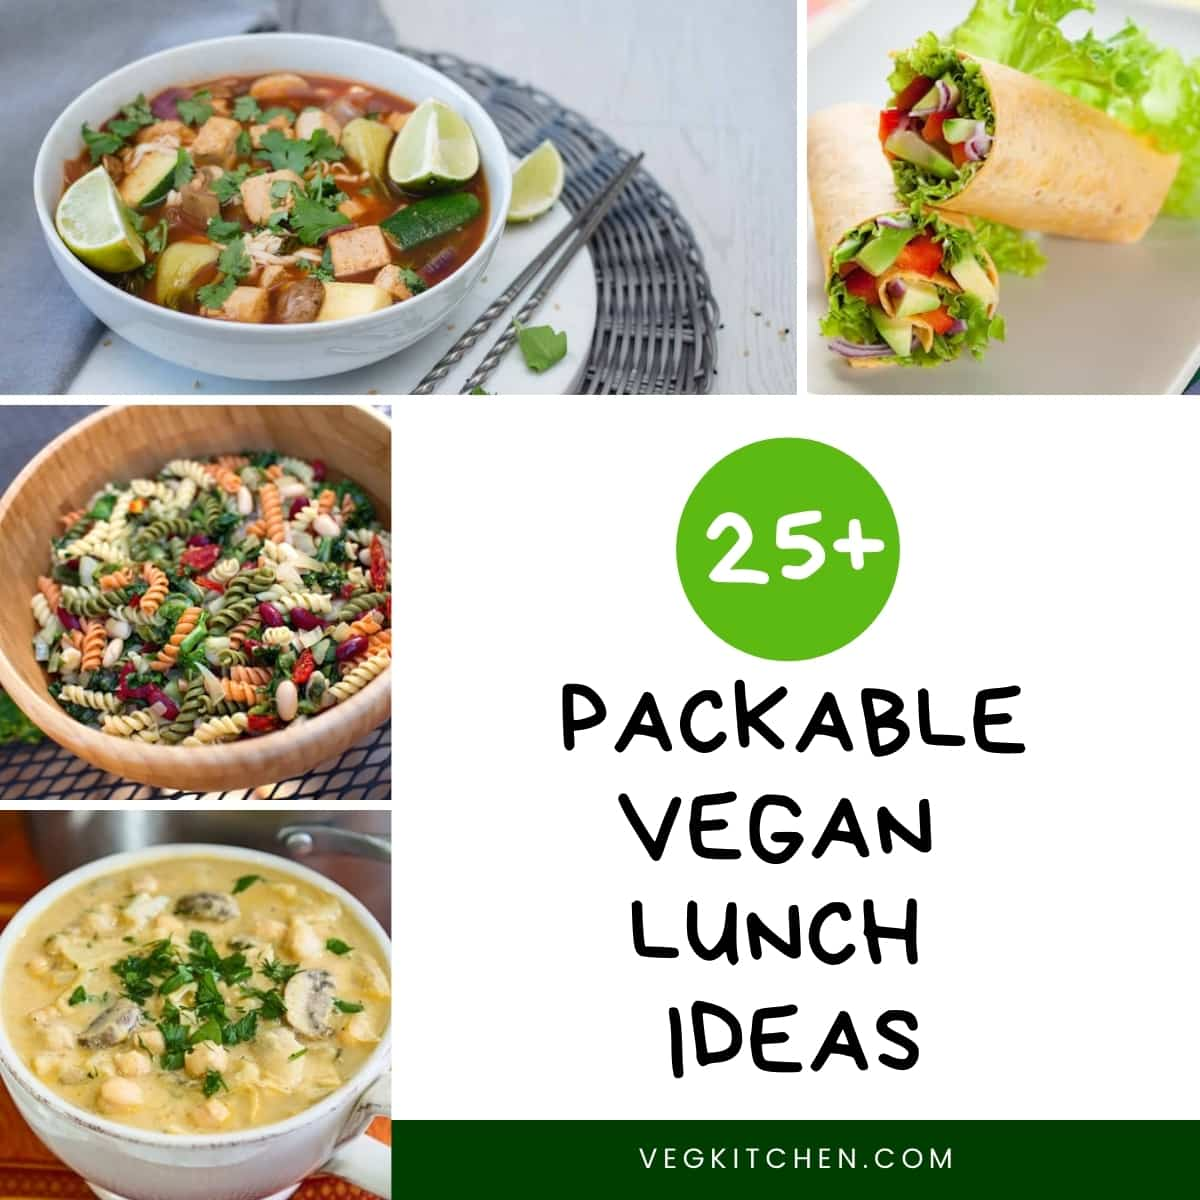 lunch ideas that could be packed in a lunchbox